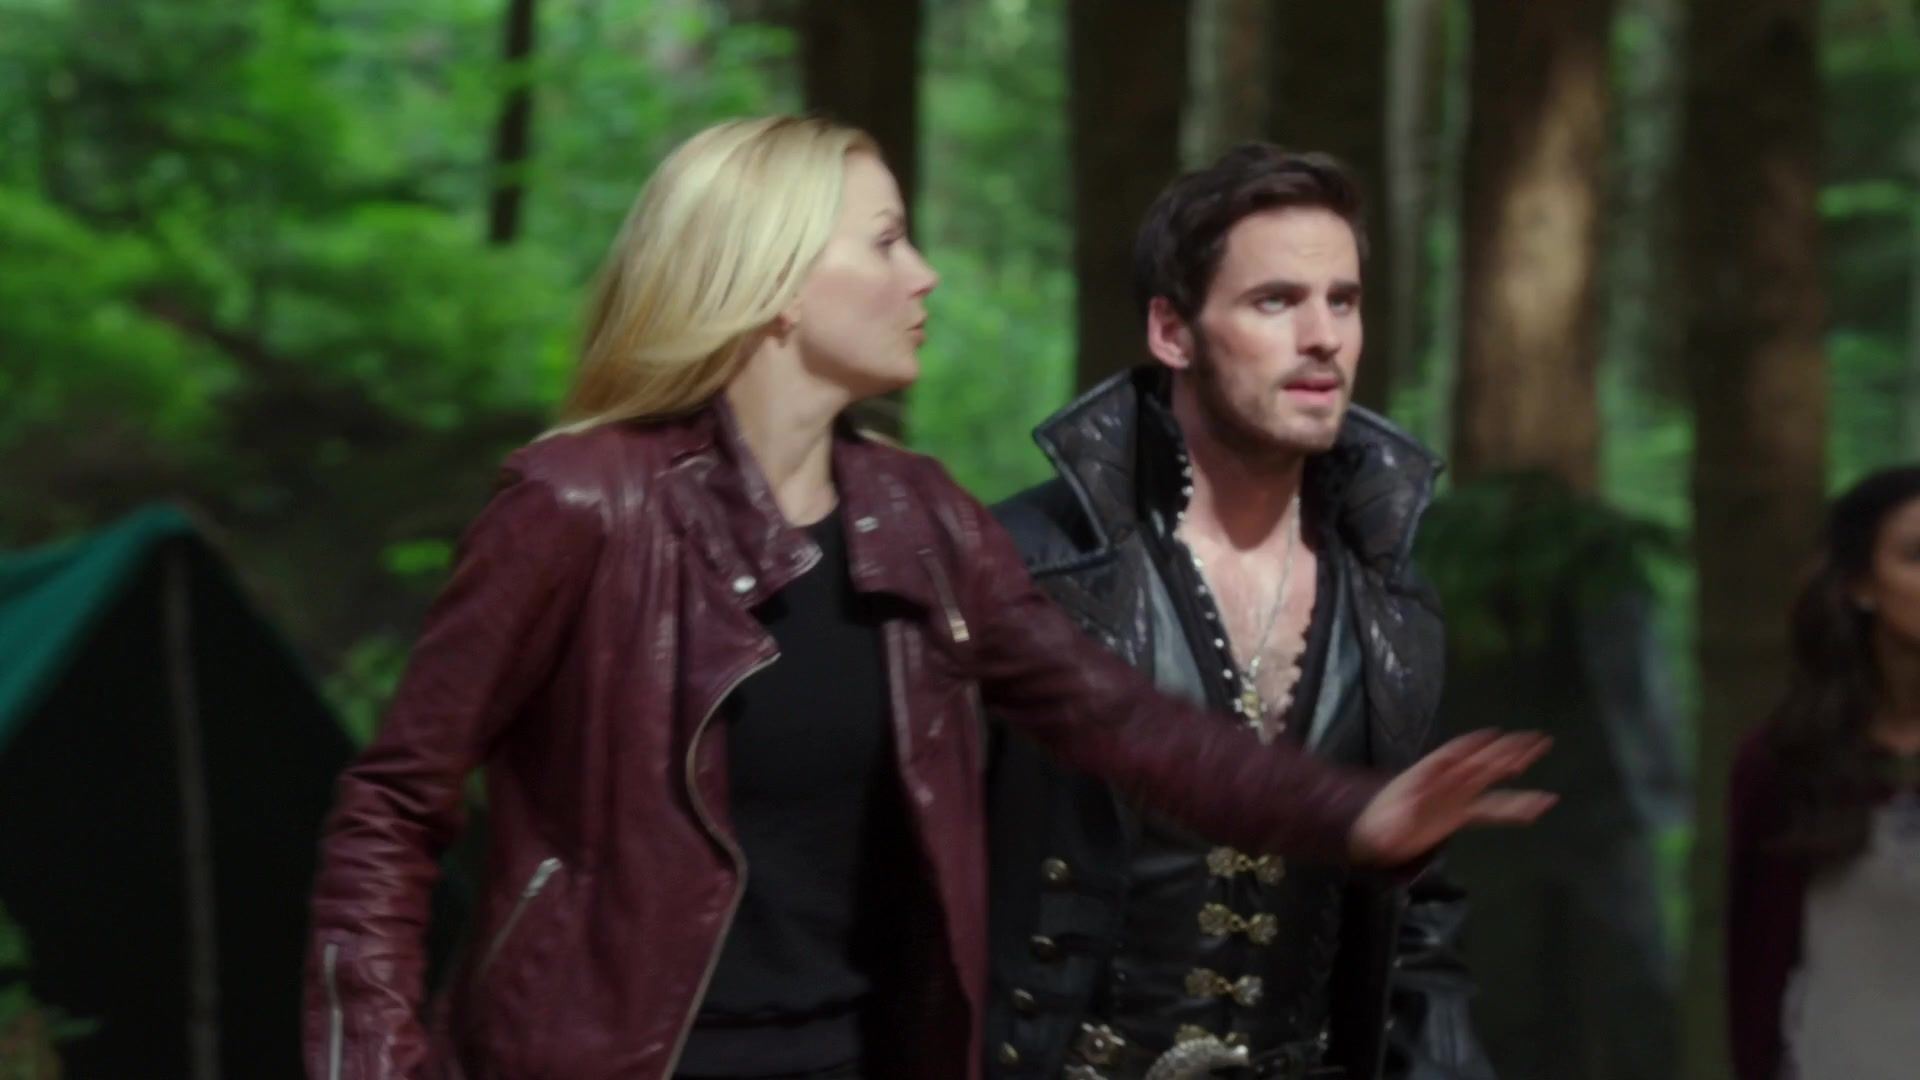 4.01 A Tale of Two Sisters - Once Upon A Time S04E01 1080p KissThemGoodbye Net 3088 - Once Upon a Time High Quality Screencaps Gallery